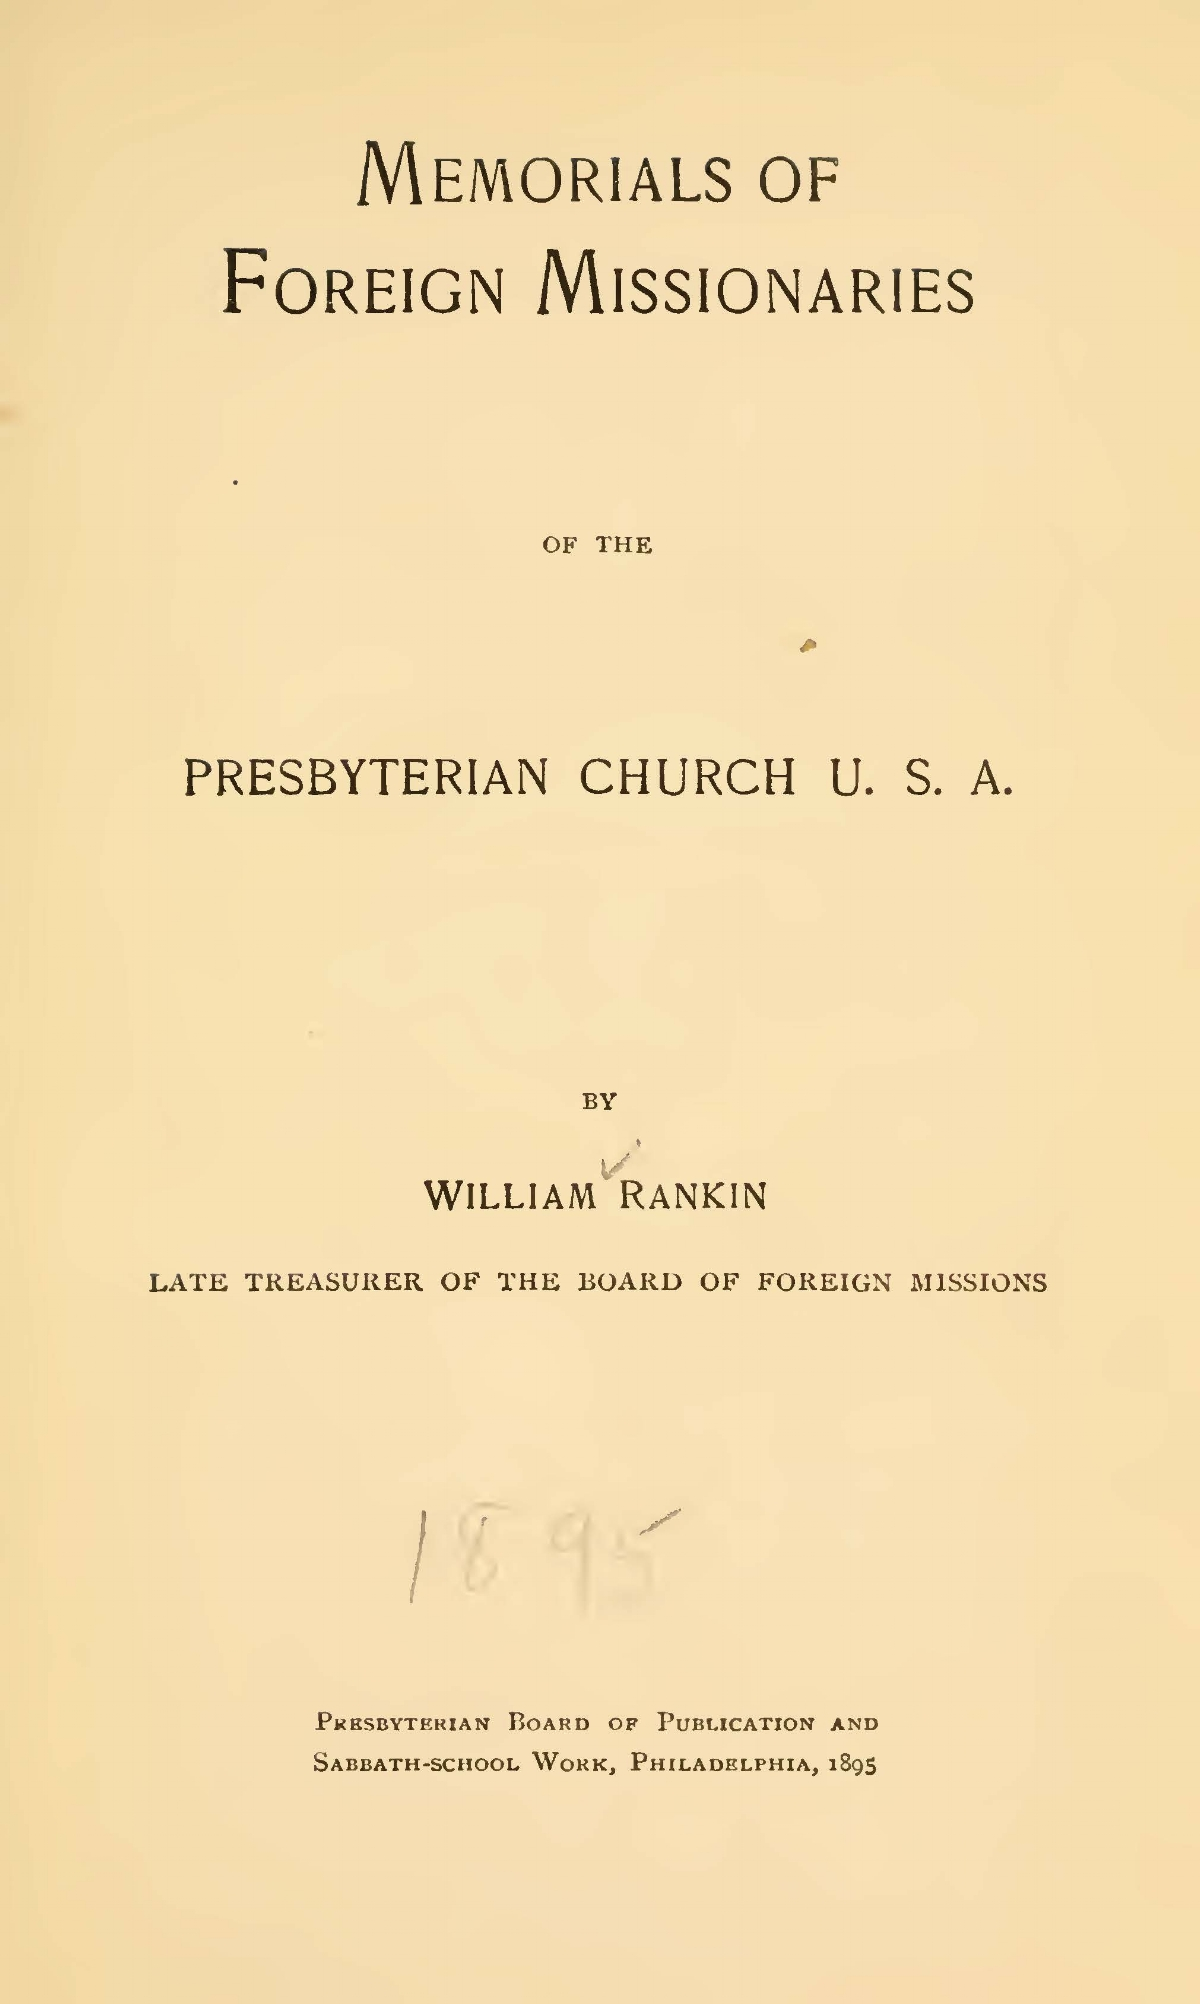 Rankin, William, Memorials of Foreign Missionaries of the Presbyterian Church, U.S.A. Title Page.jpg